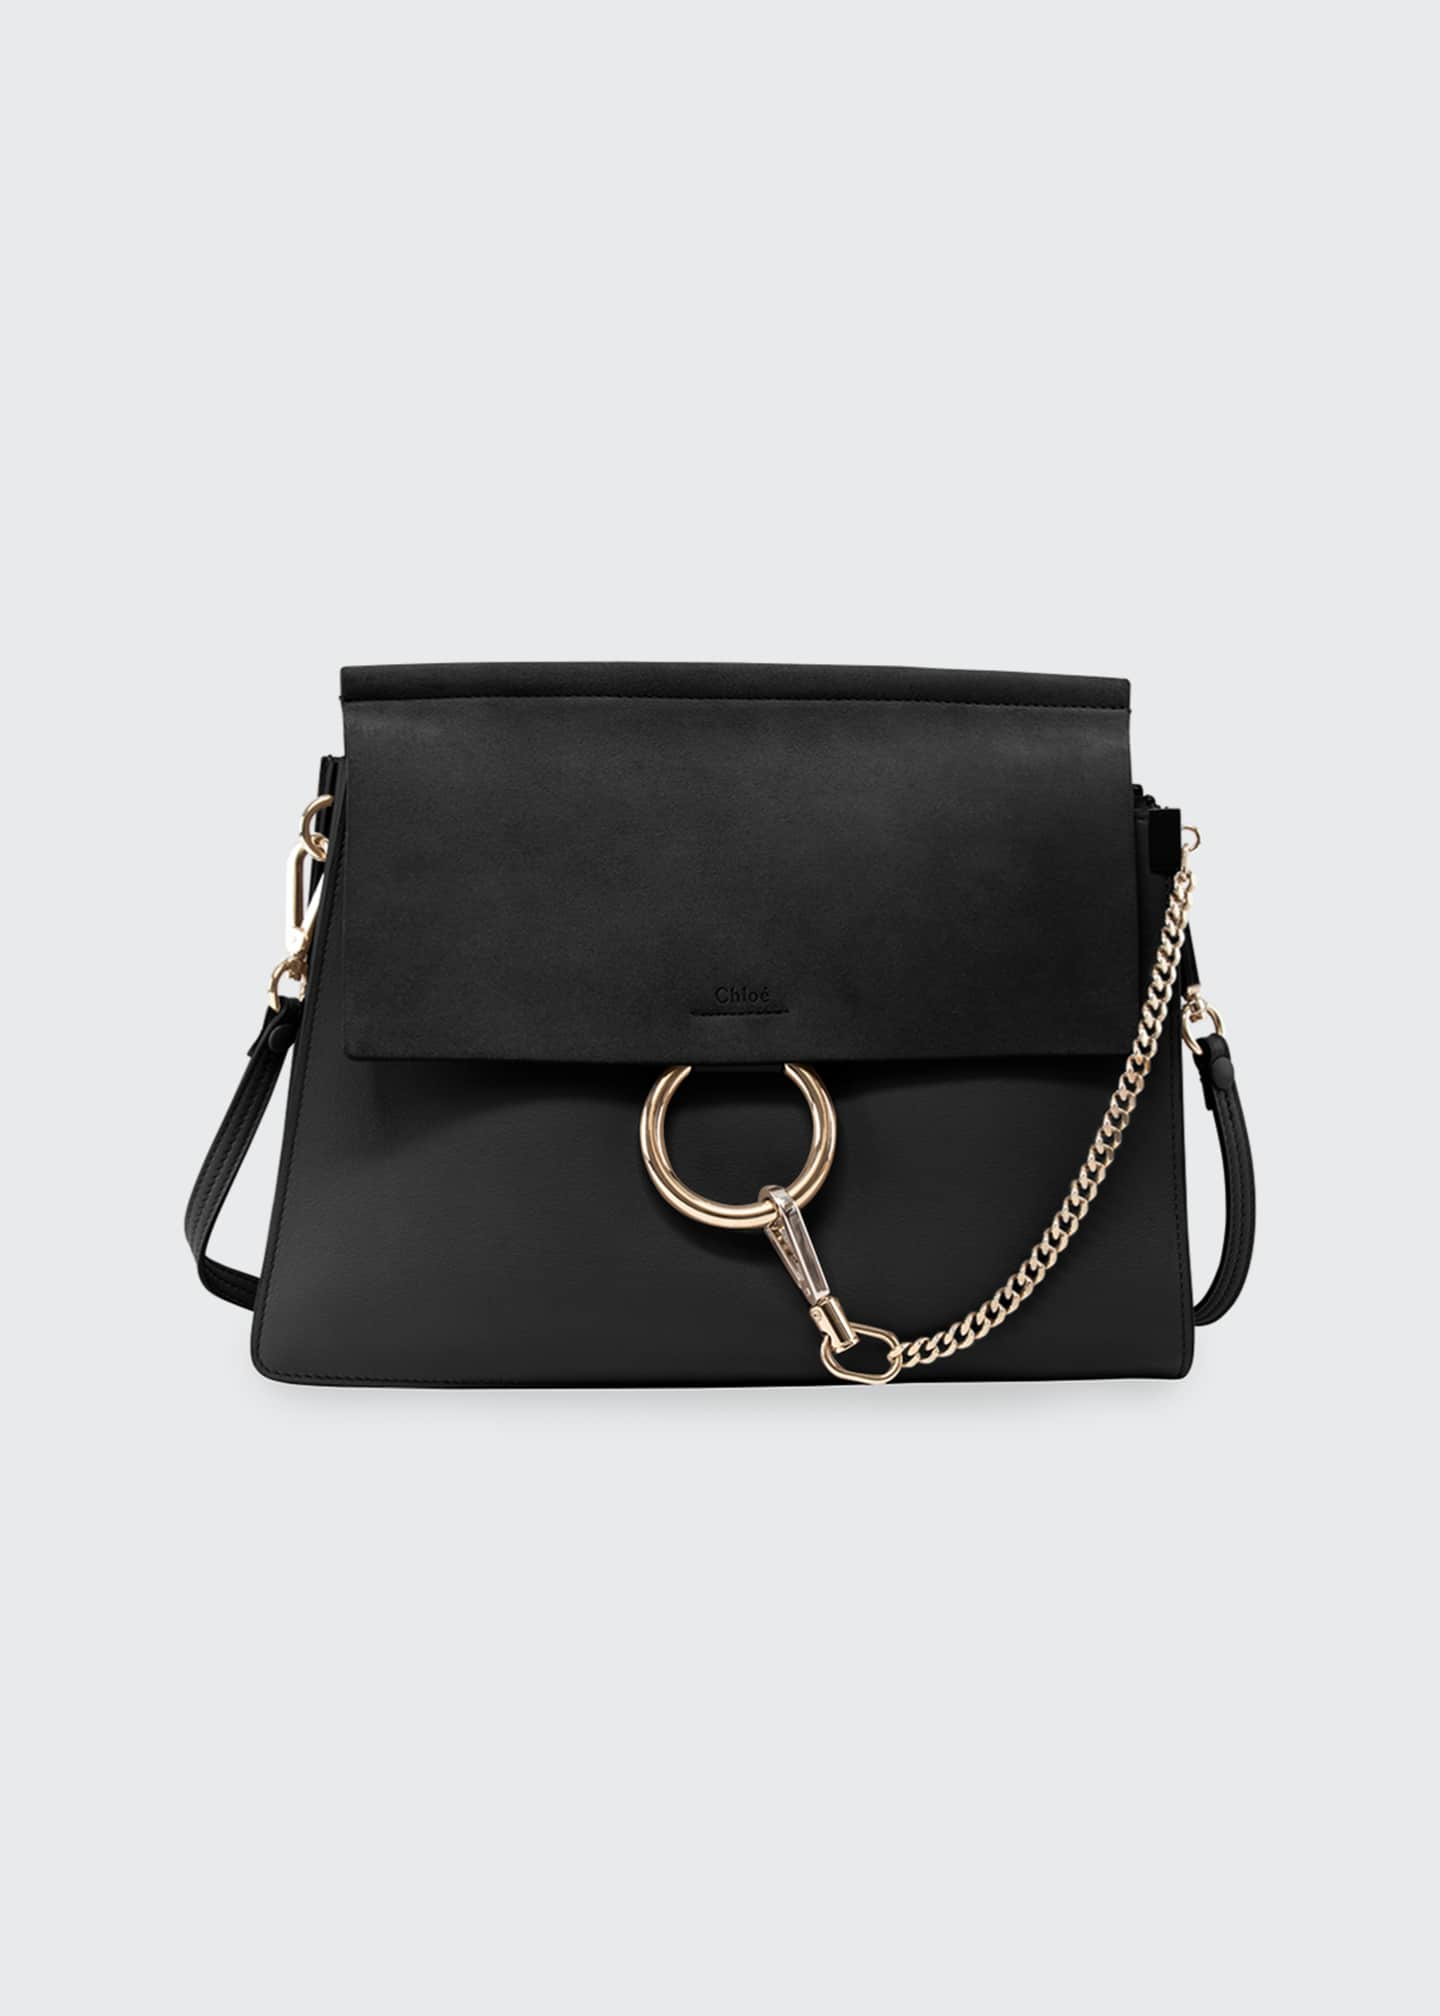 Chloe Faye Suede-Flap Shoulder Bag